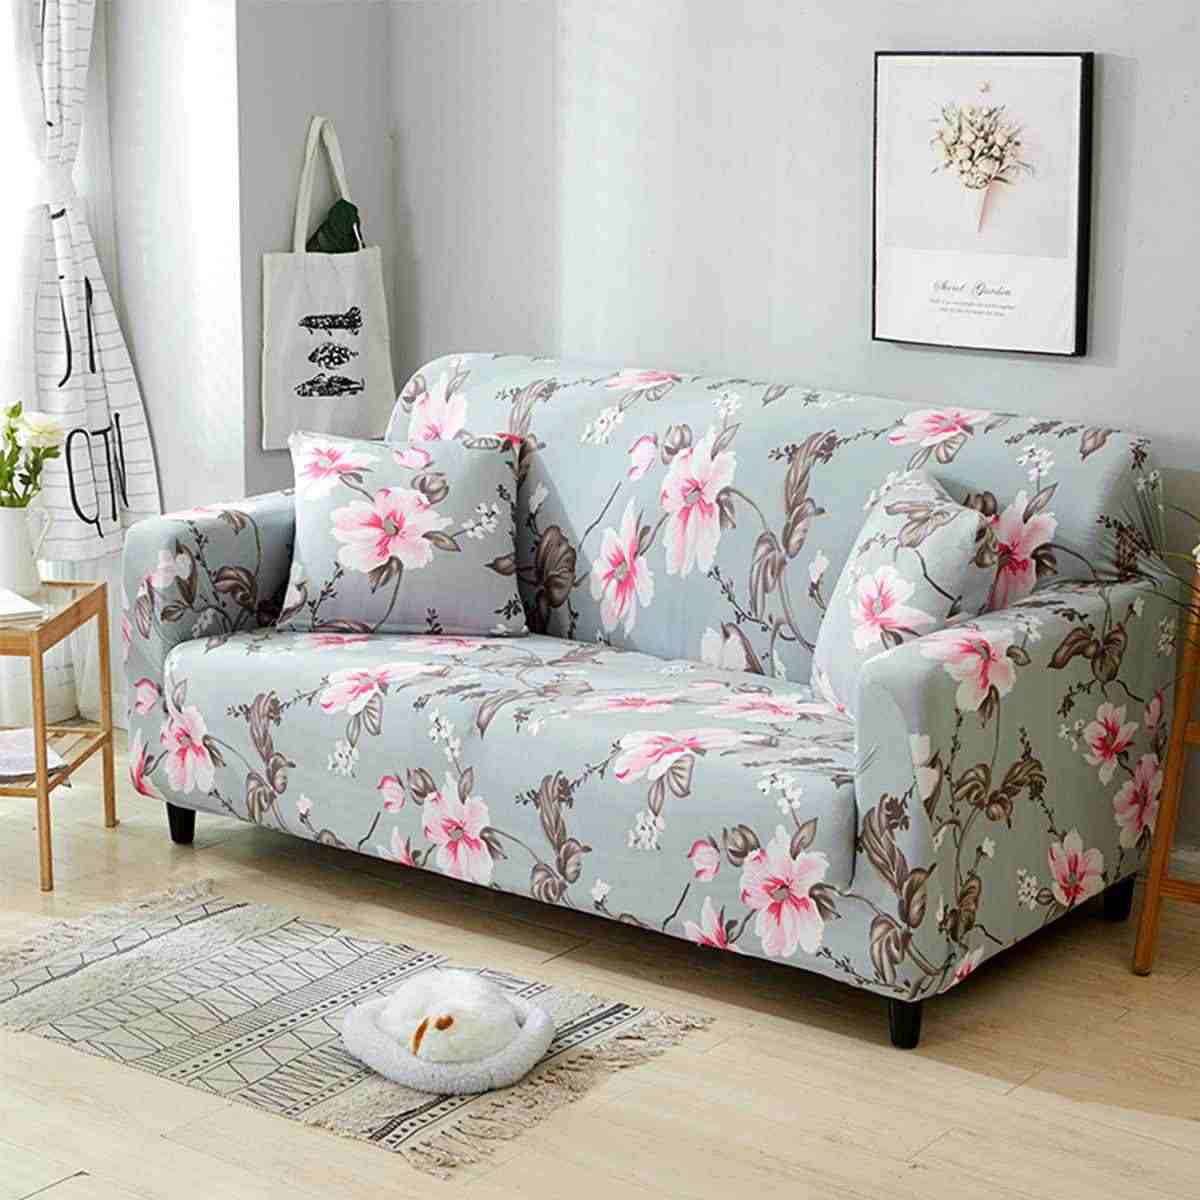 1/2/3/4 Peony Sofa Mebel Cover Kursi Sofa Melindungi Kursi Empuk Sarung All-In tahan Slip Sofa Cover